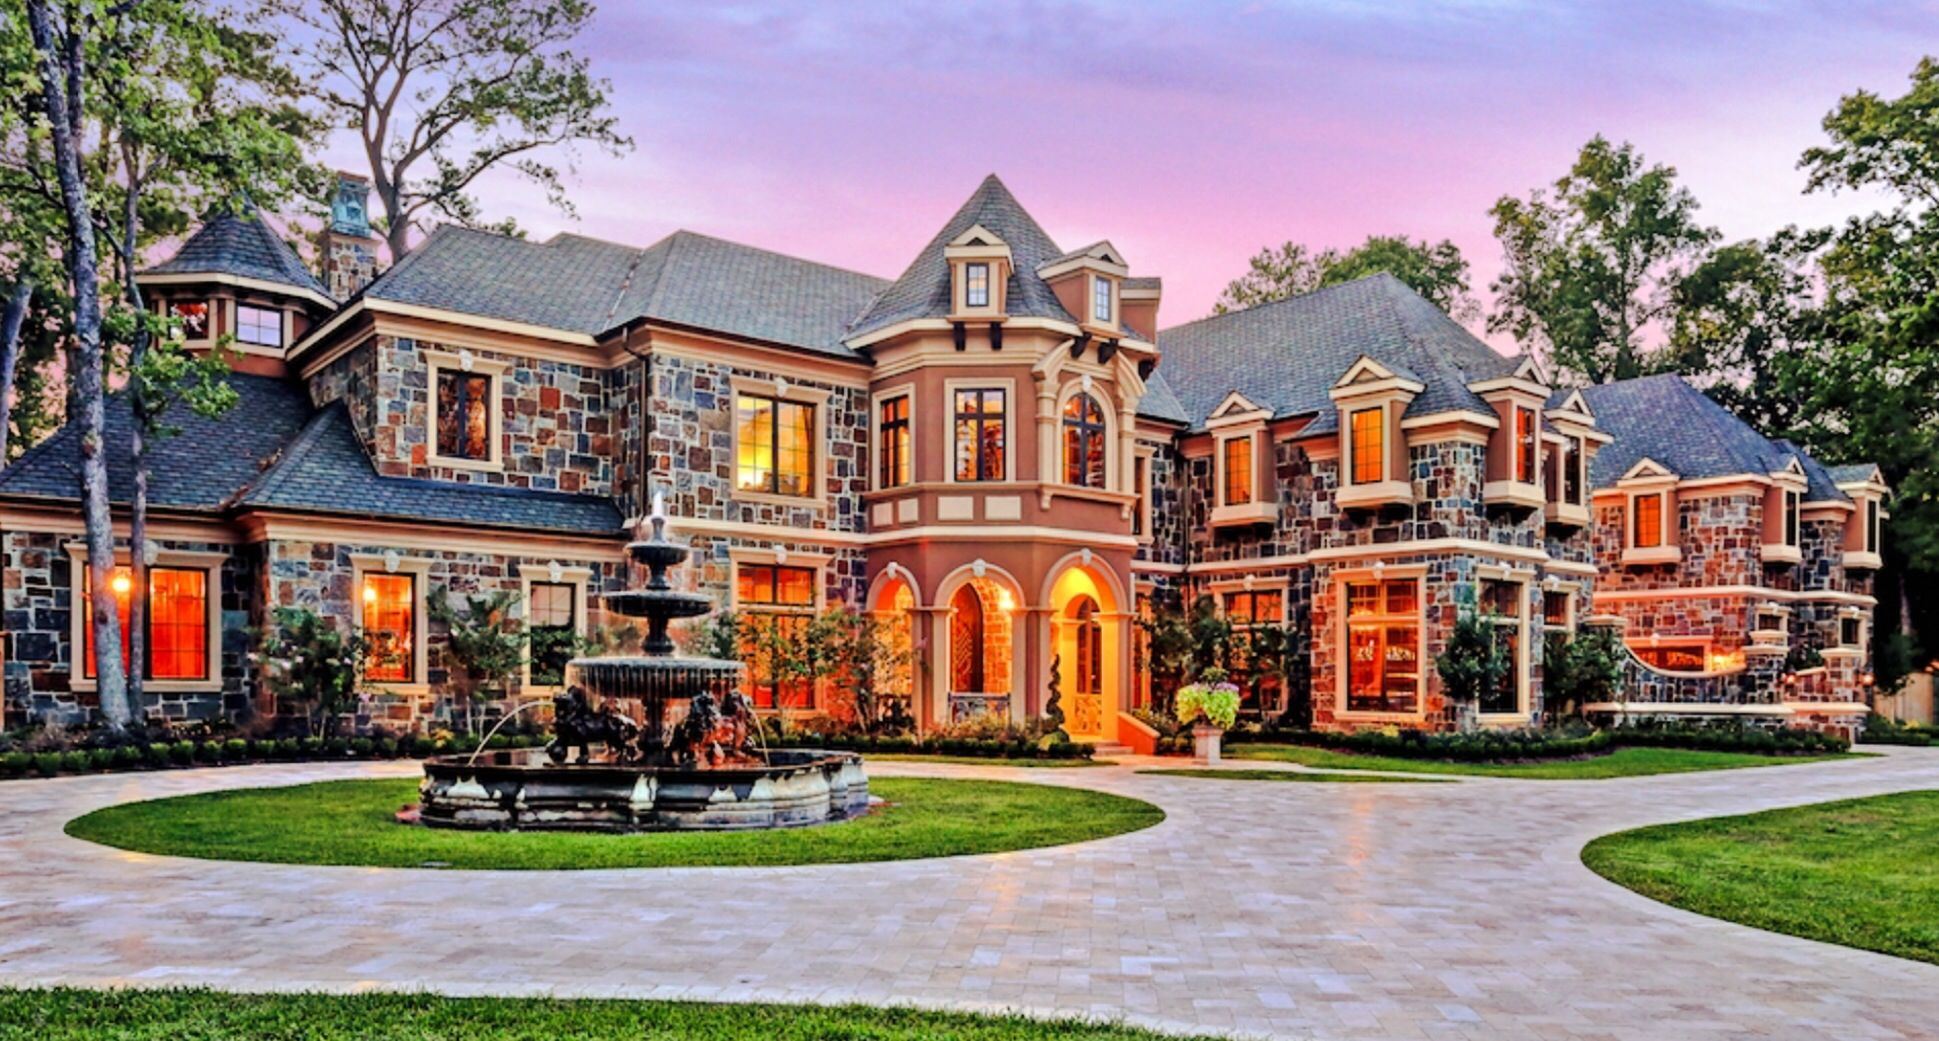 Best Kitchen Gallery: ❤ ♤ ❤ ♤ Home Decor Pinterest House Luxury And Architecture of Luxury Homes In Houston on rachelxblog.com